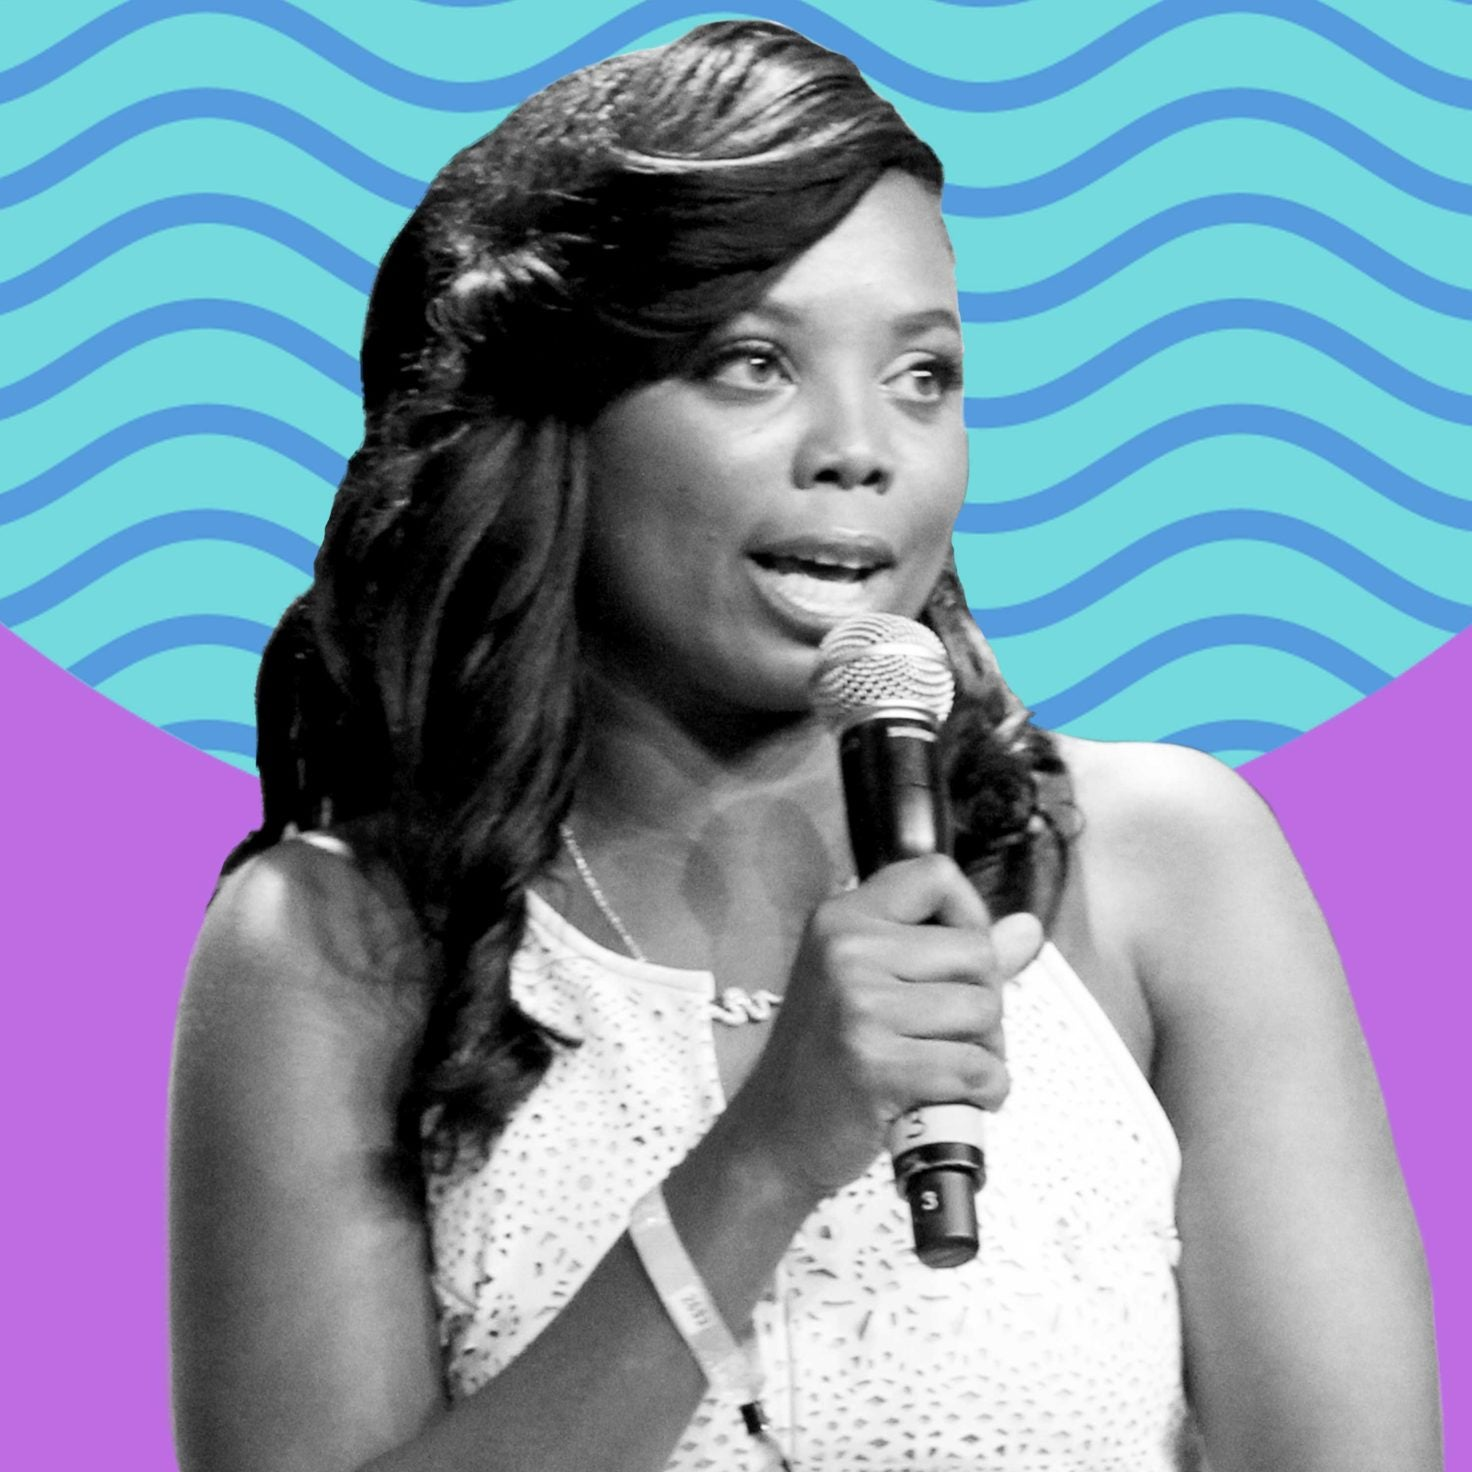 Jemele Hill Admits She Asked To Leave 'SportsCenter': 'I Requested This'